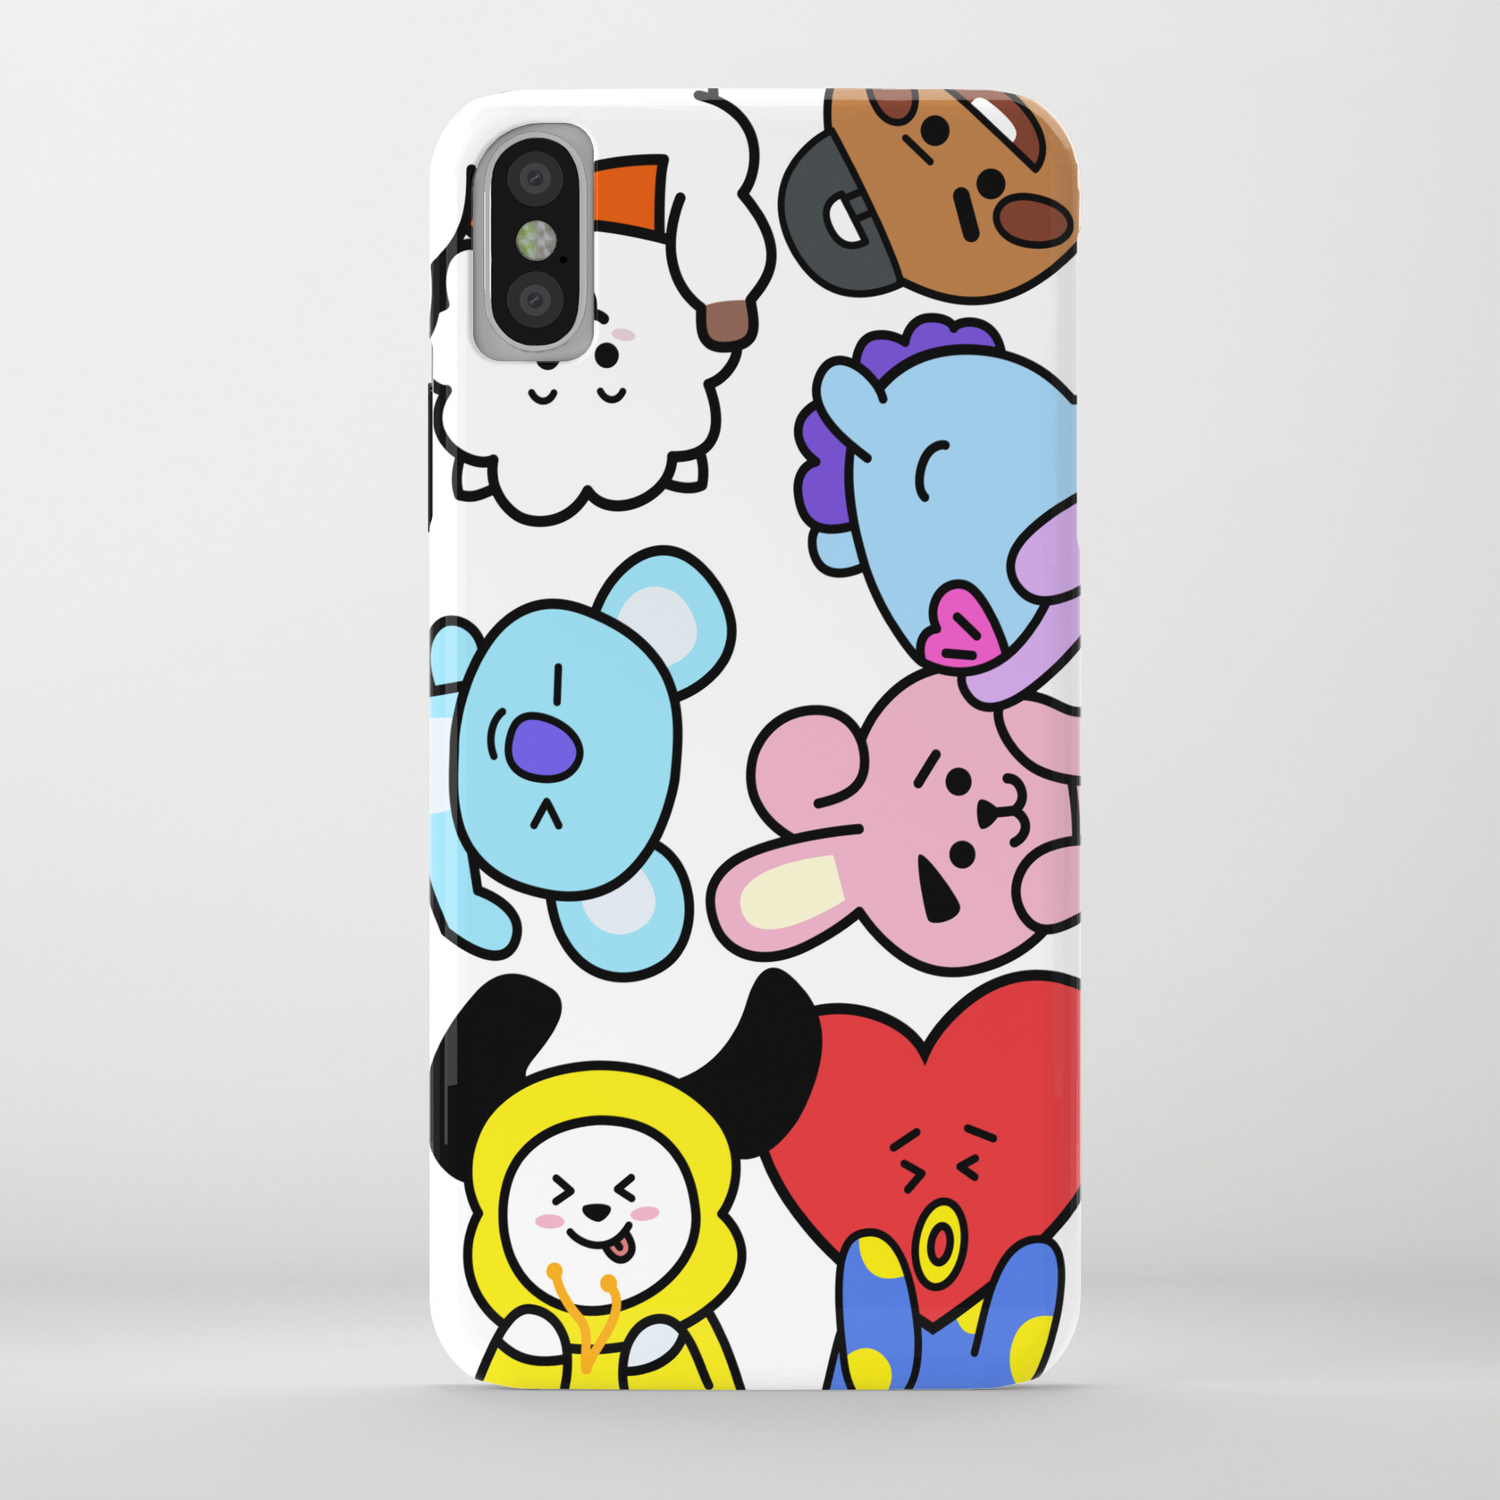 bt21 iphone xs max case